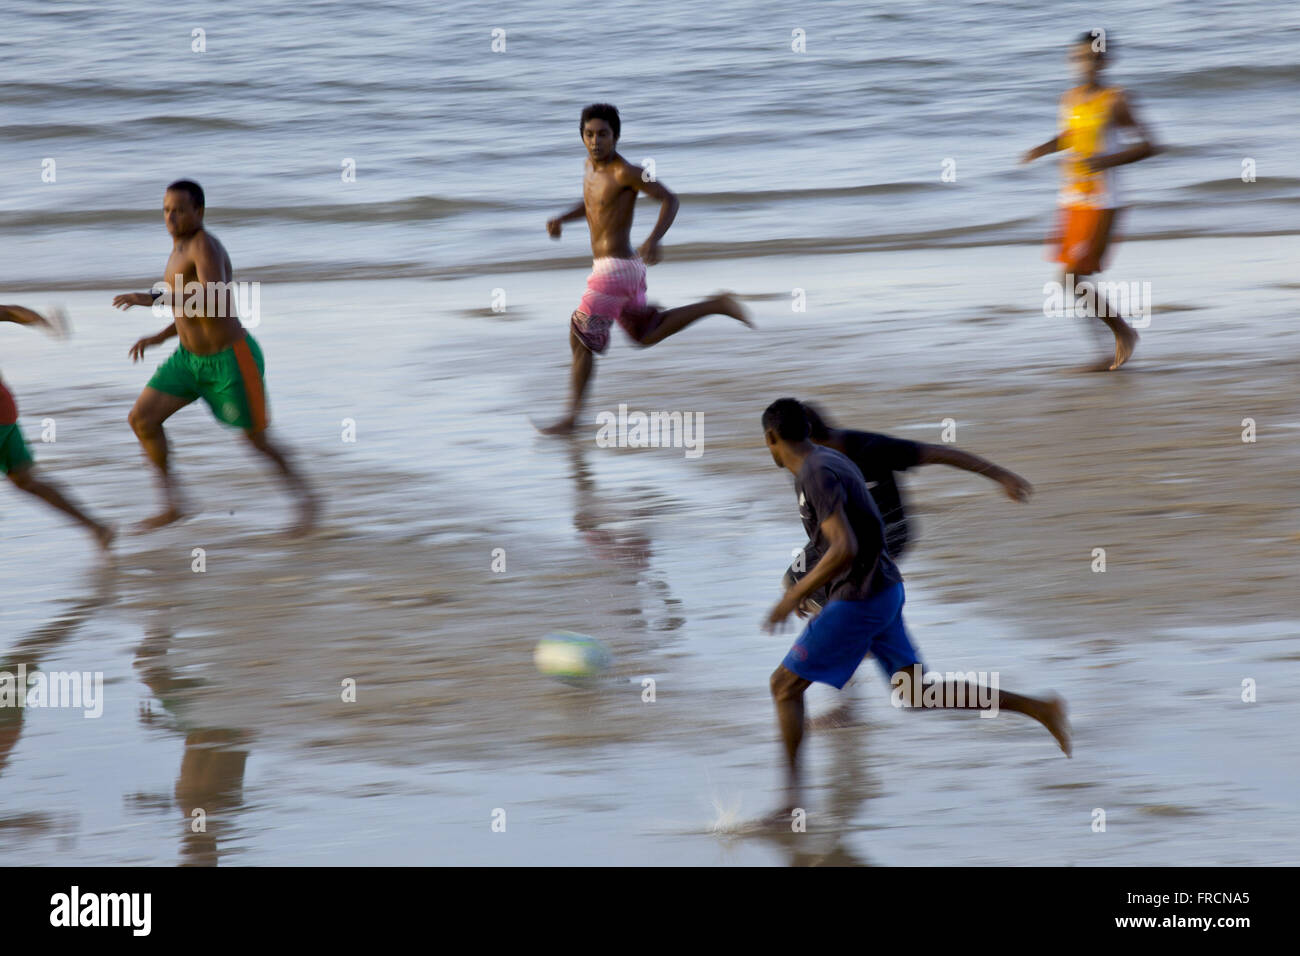 Football game on the Beach Centre - District of Pipa - Stock Image